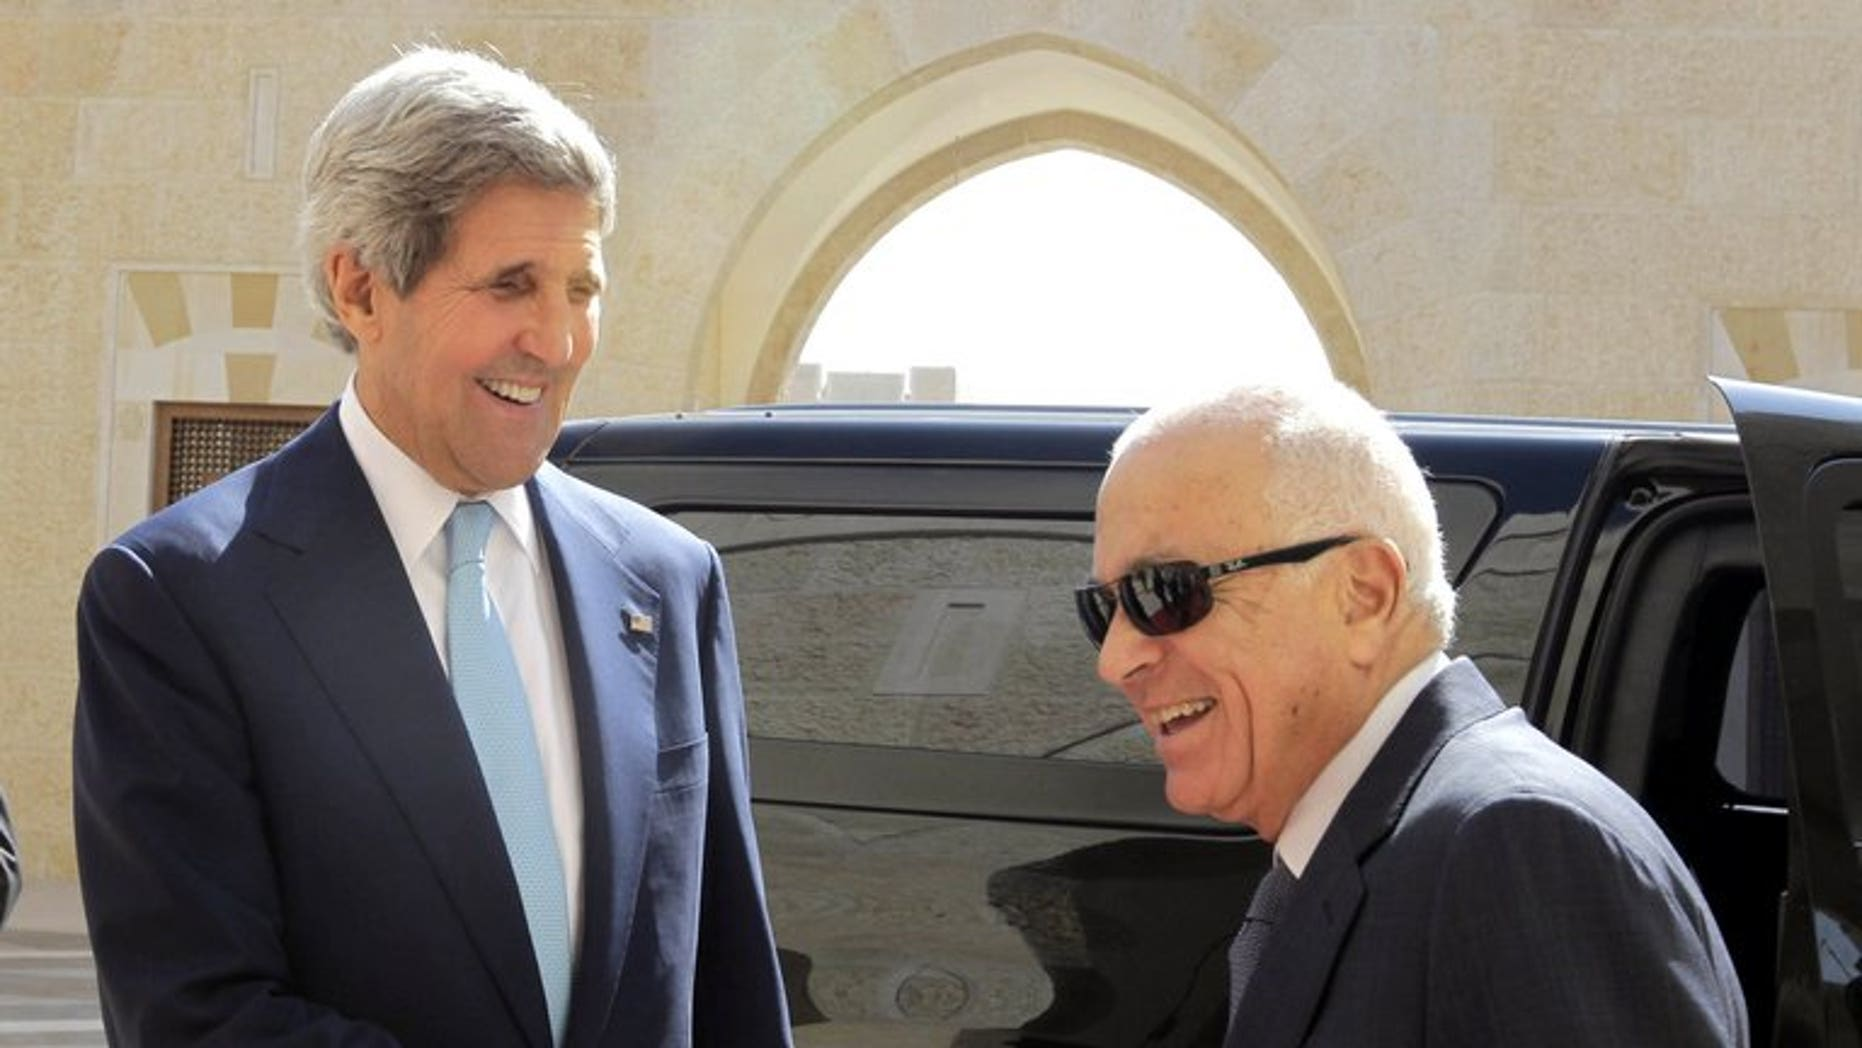 US Secretary of State John Kerry (left) shakes hands with Arab League chief Nabil el-Araby ahead of talks at the Hummar Palace in Amman, on July 17, 2013. The Arab League says it supports the Palestinian stance on the announcement of resumed peace talks with Israel, but that it was sceptical of Israeli intentions.